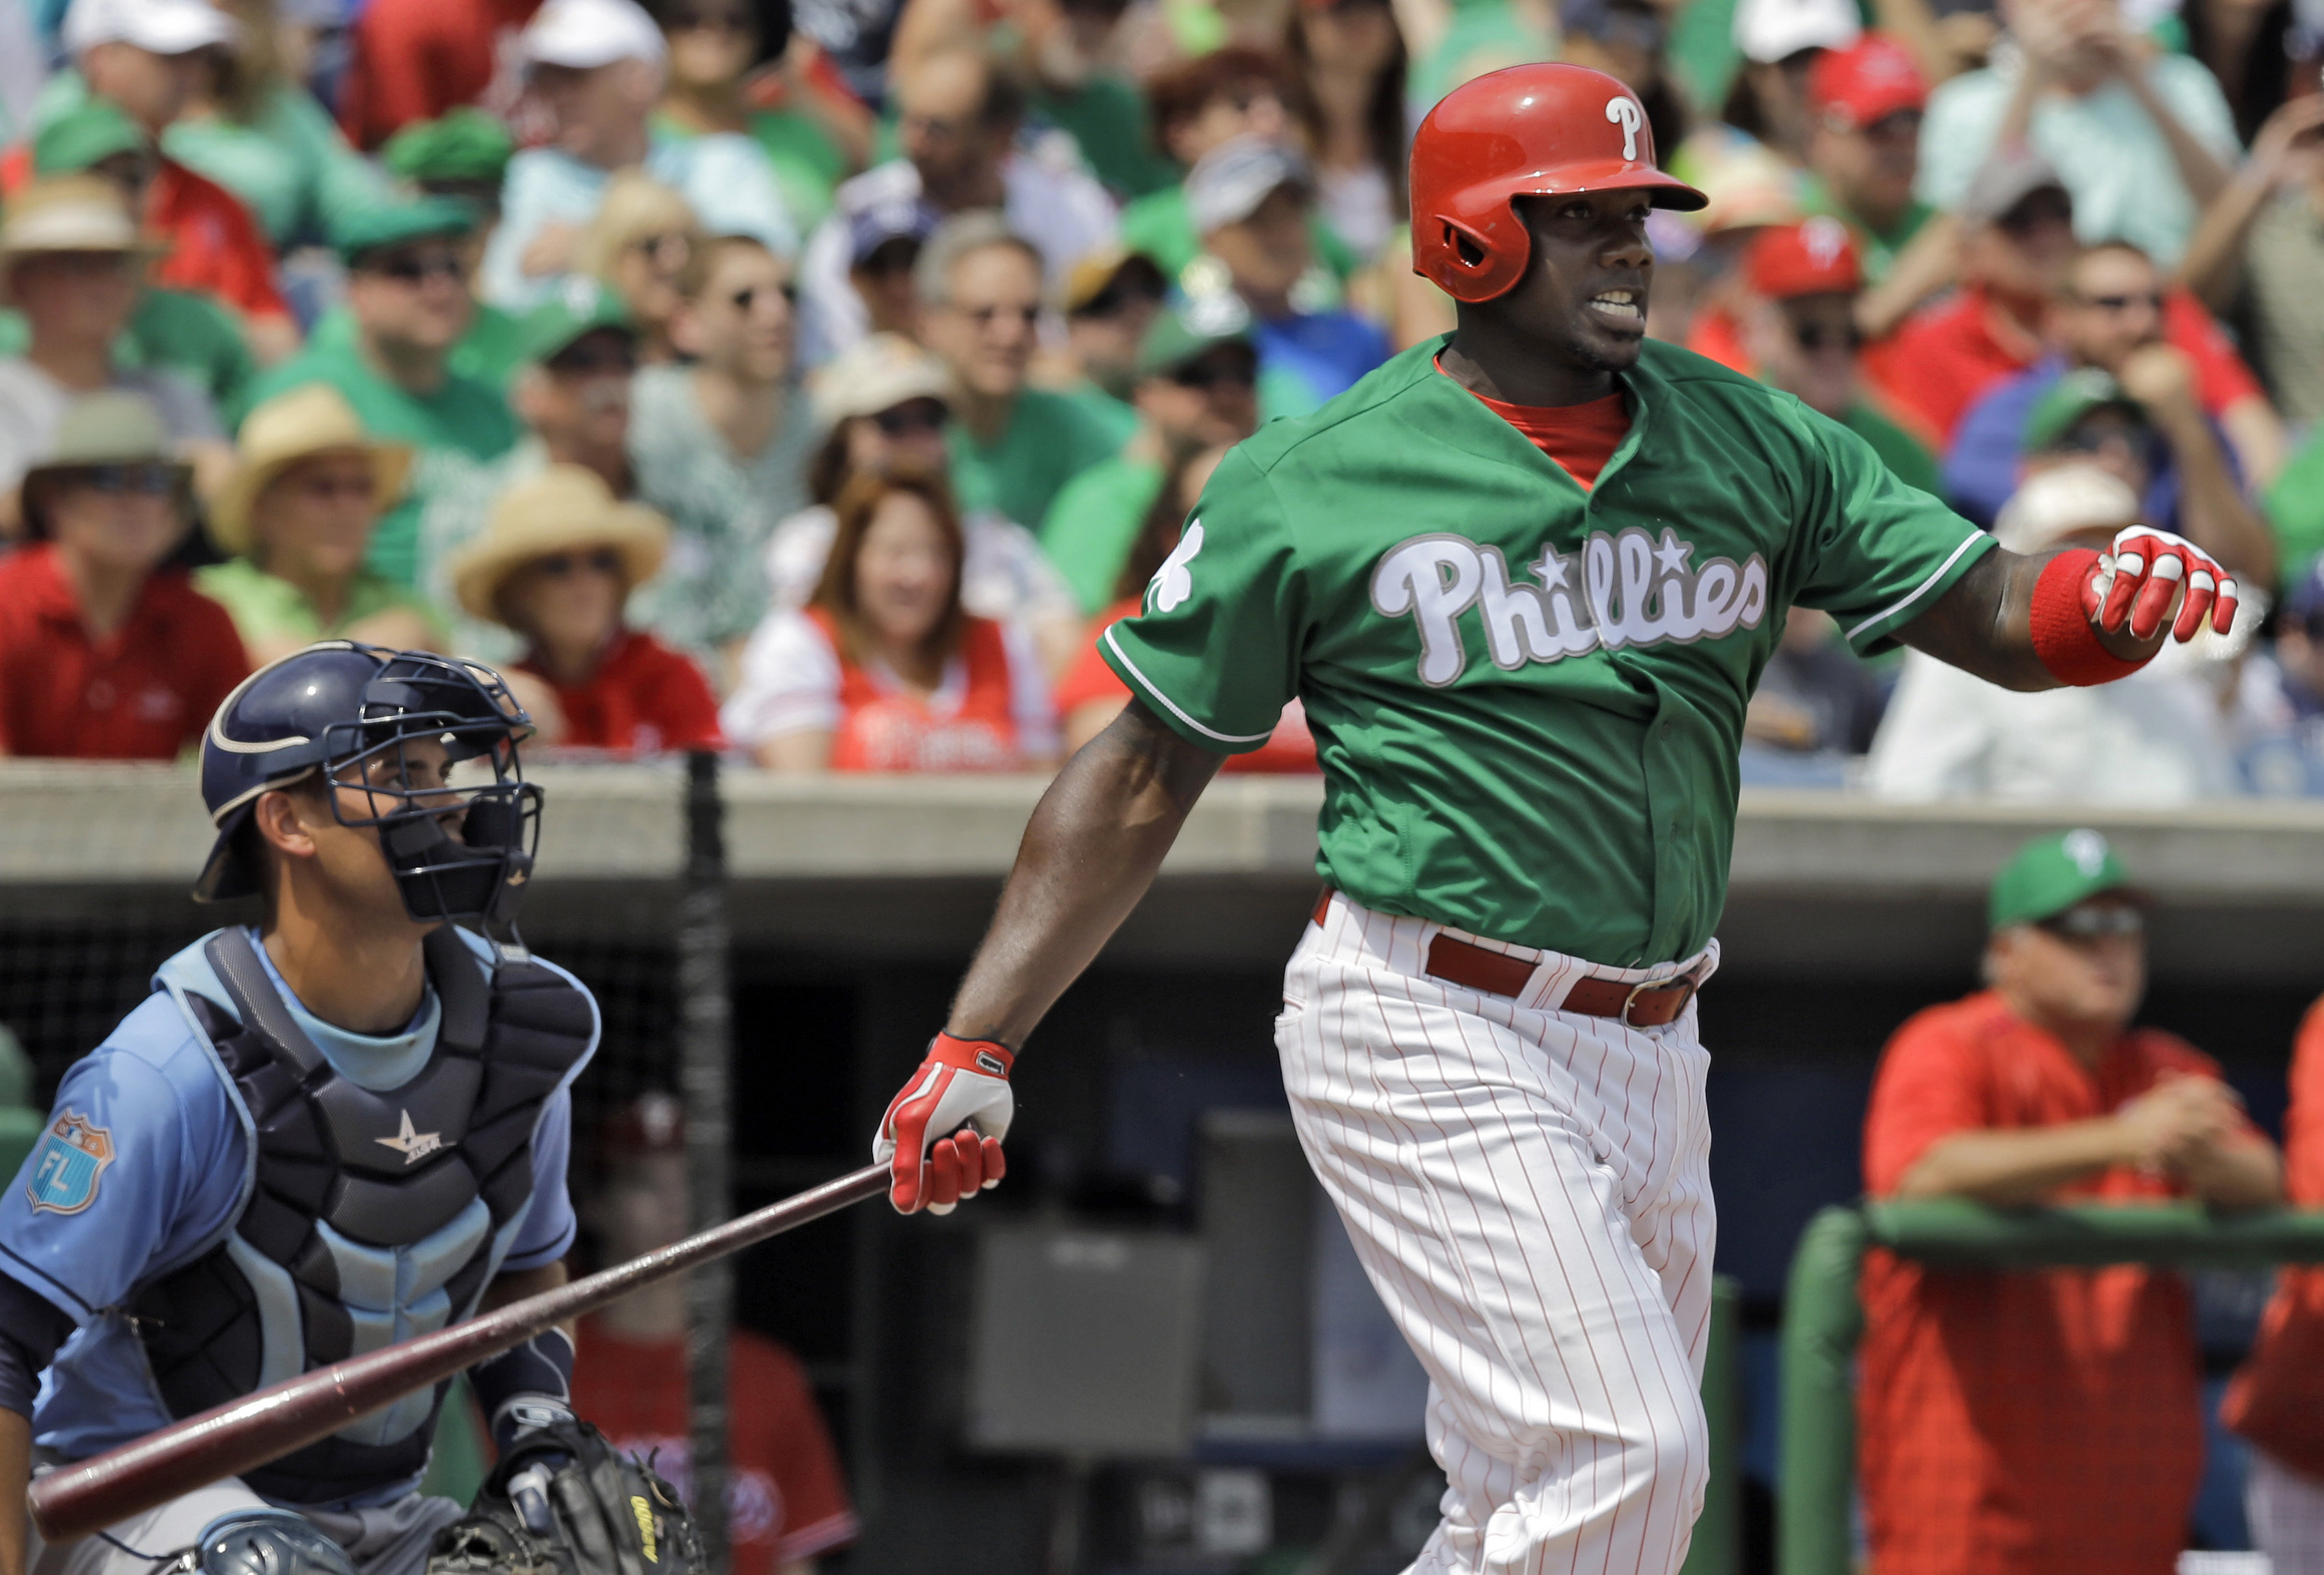 Philadelphia Phillies' Ryan Howard follows through on a double off Tampa Bay Rays starting pitcher Matt Moore during the second inning of a spring training baseball game Thursday, March 17, 2016, in Clearwater, Fla. Catching for the Rays is Luke Maile. (A